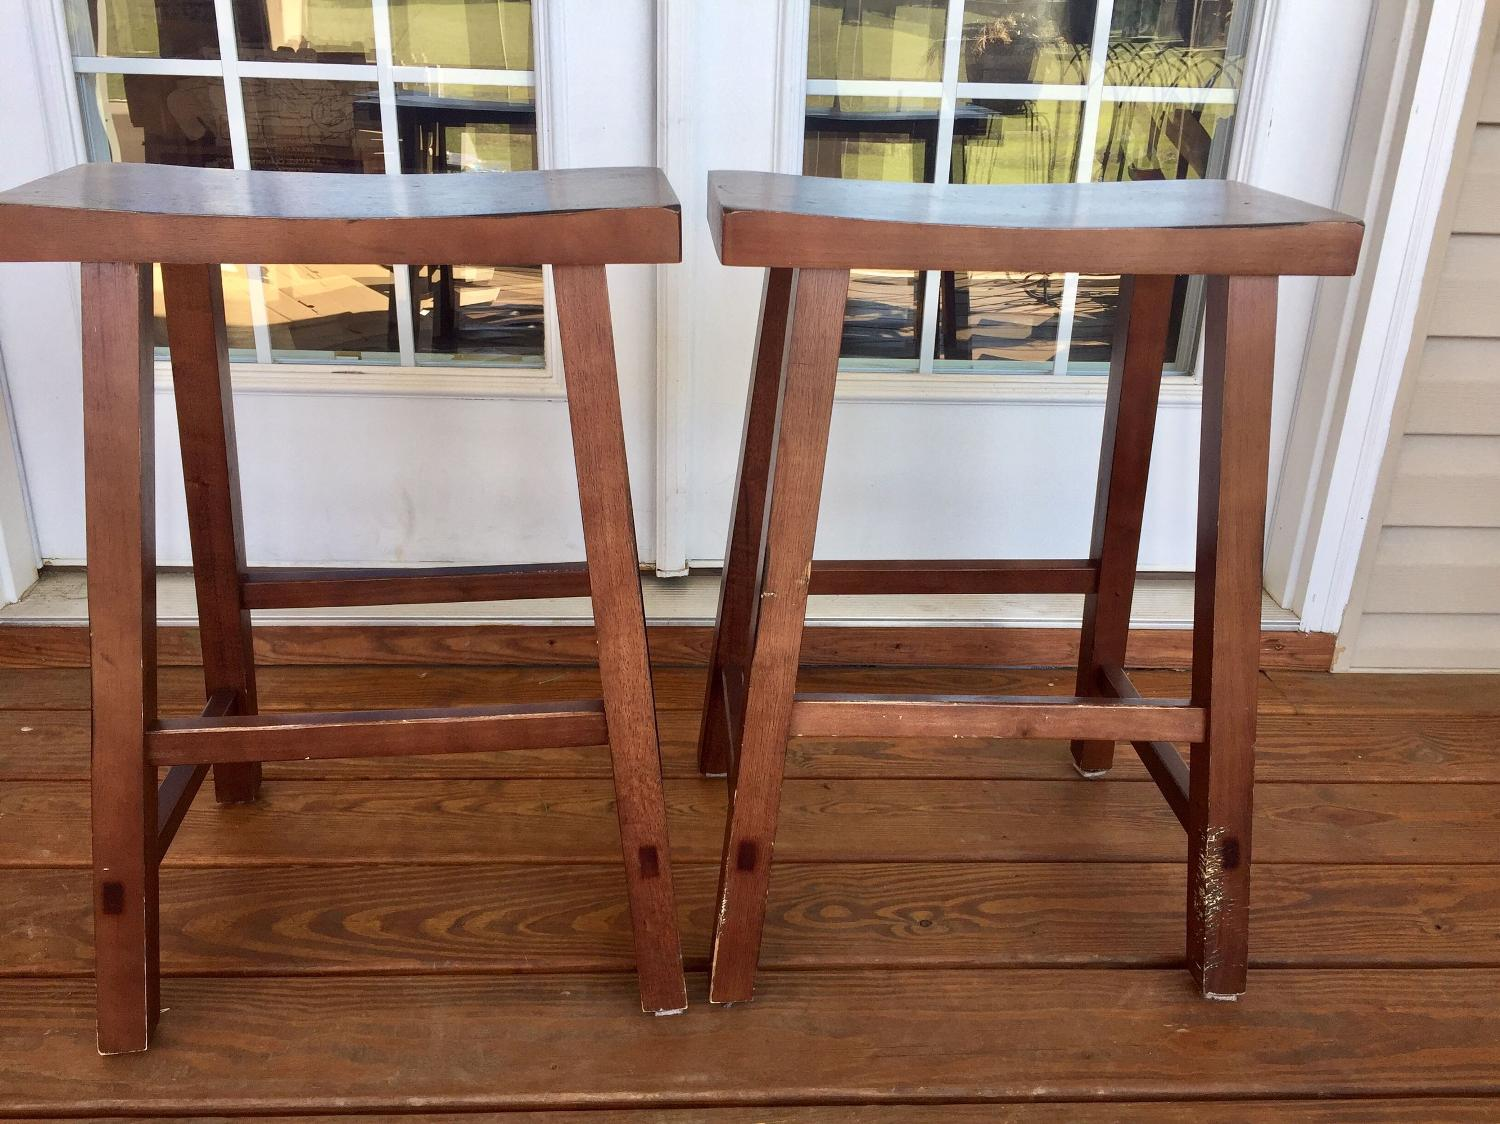 Find More Solid Wood Bar Stools Reduced For Sale At Up To 90 Off Concord Nc